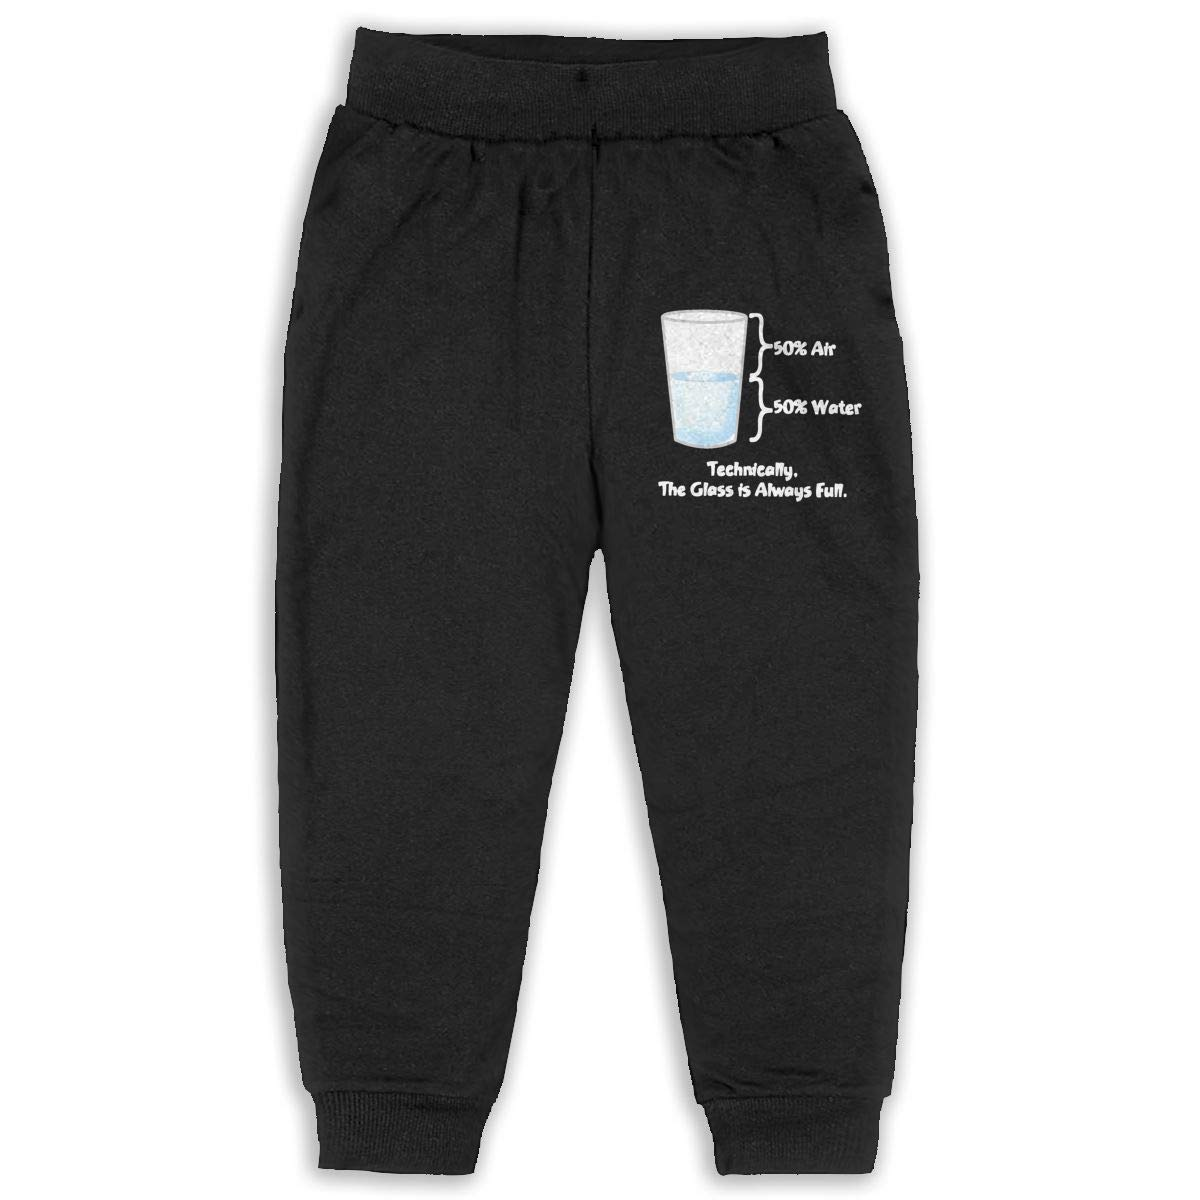 Never-Cold Technically The Glass is Completely Toddler Boys Sweatpants Elastic Waist Pants for 2T-6T